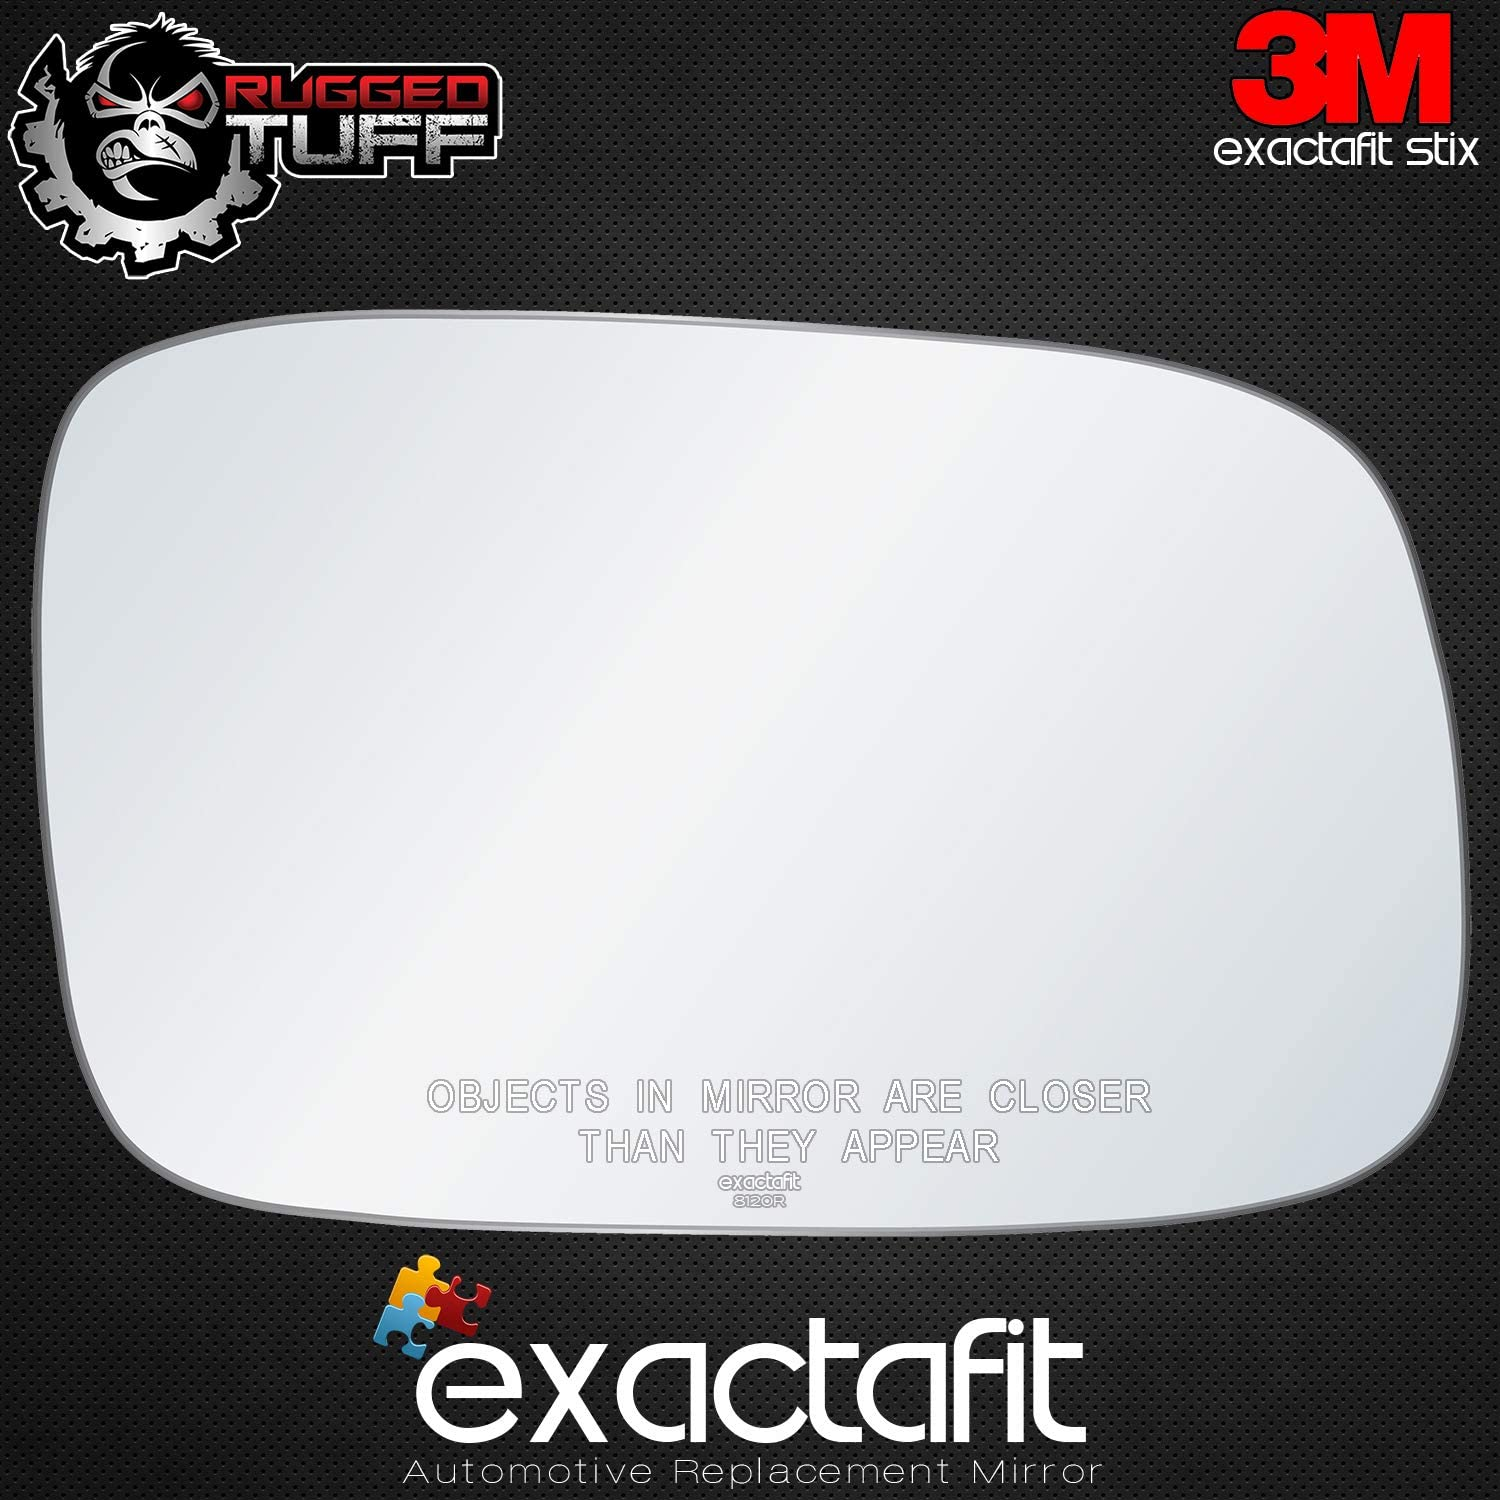 exactafit 8120R Replacement Lens Power Side Mirror Glass fits Passenger Right Hand RH for Lexus ES300 ES330 GS300 GS400 GS430 1998-2006 by Rugged TUFF